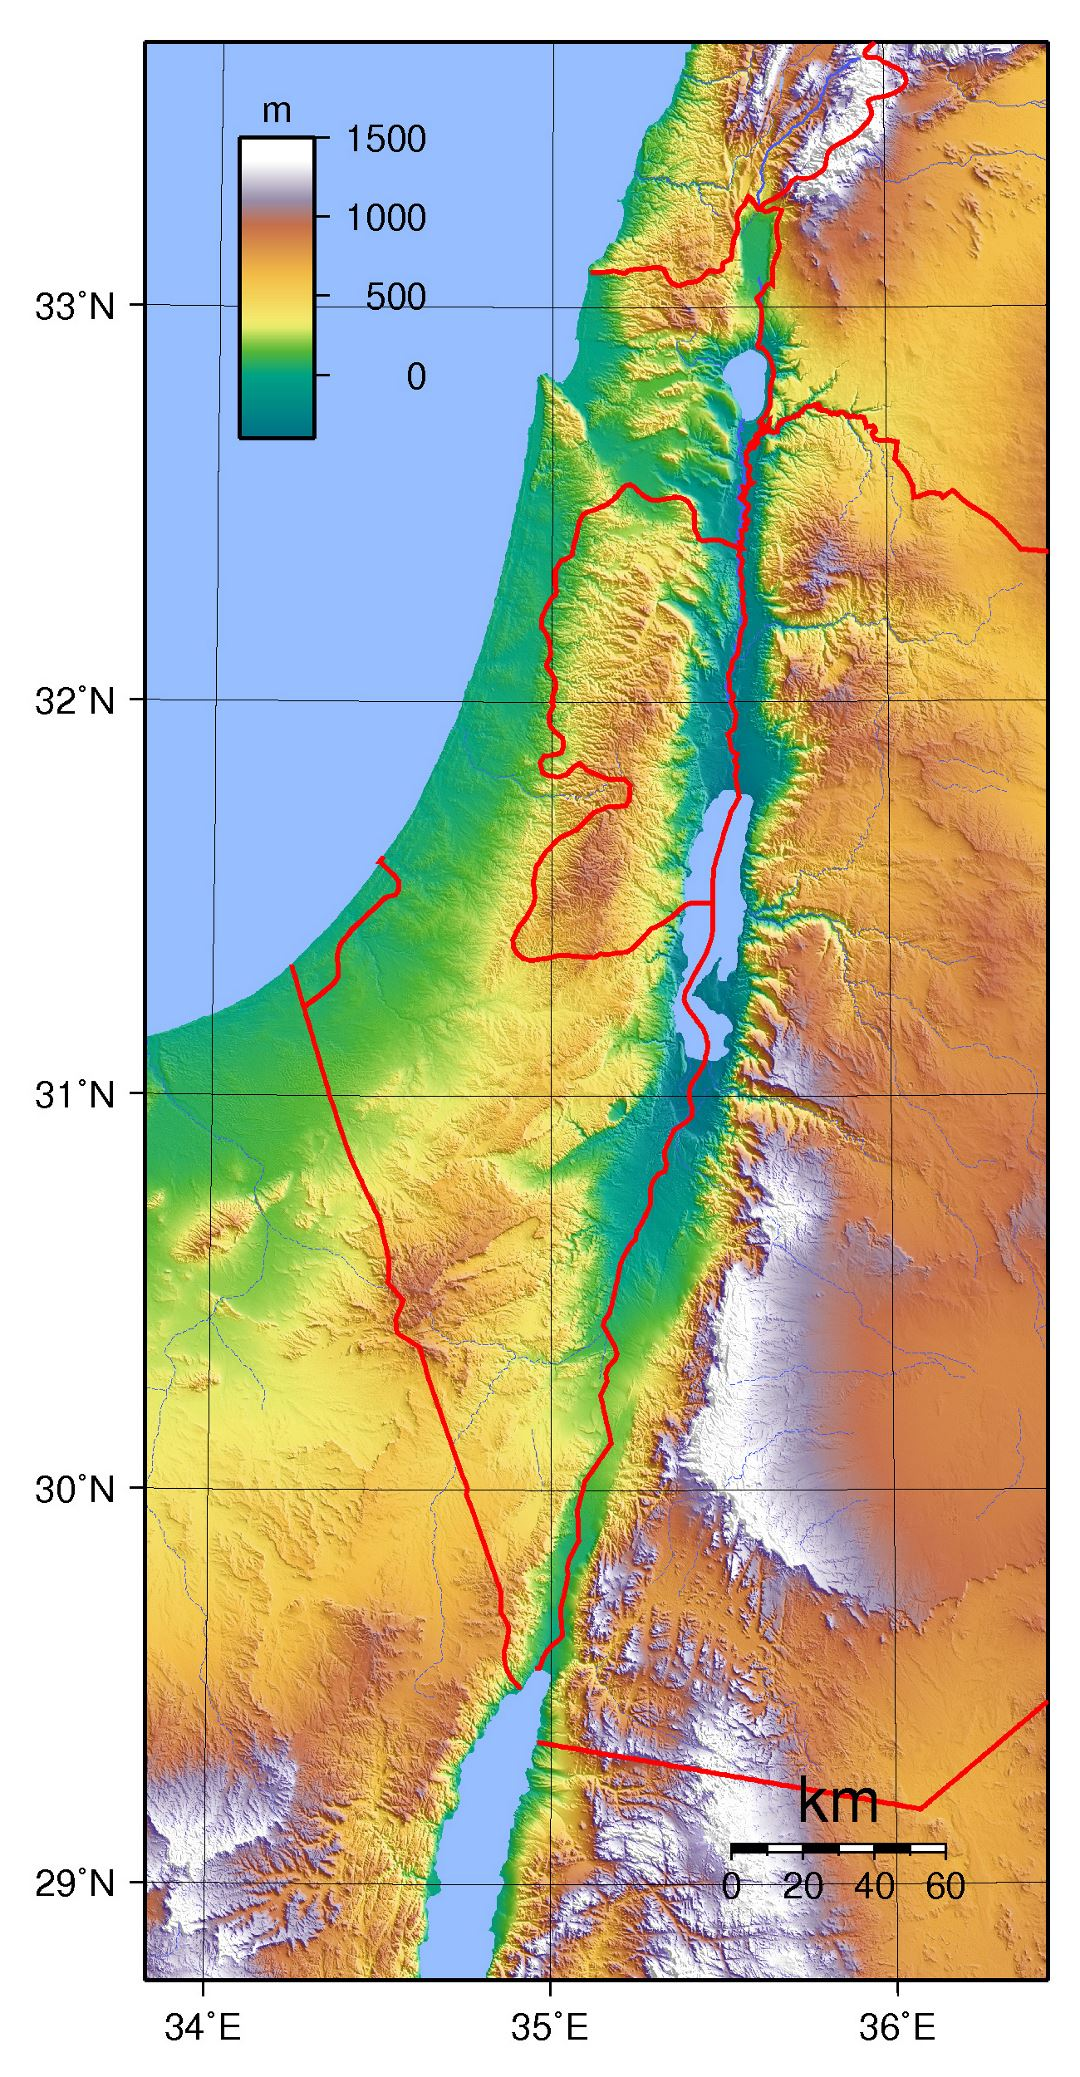 Large topographical map of Israel